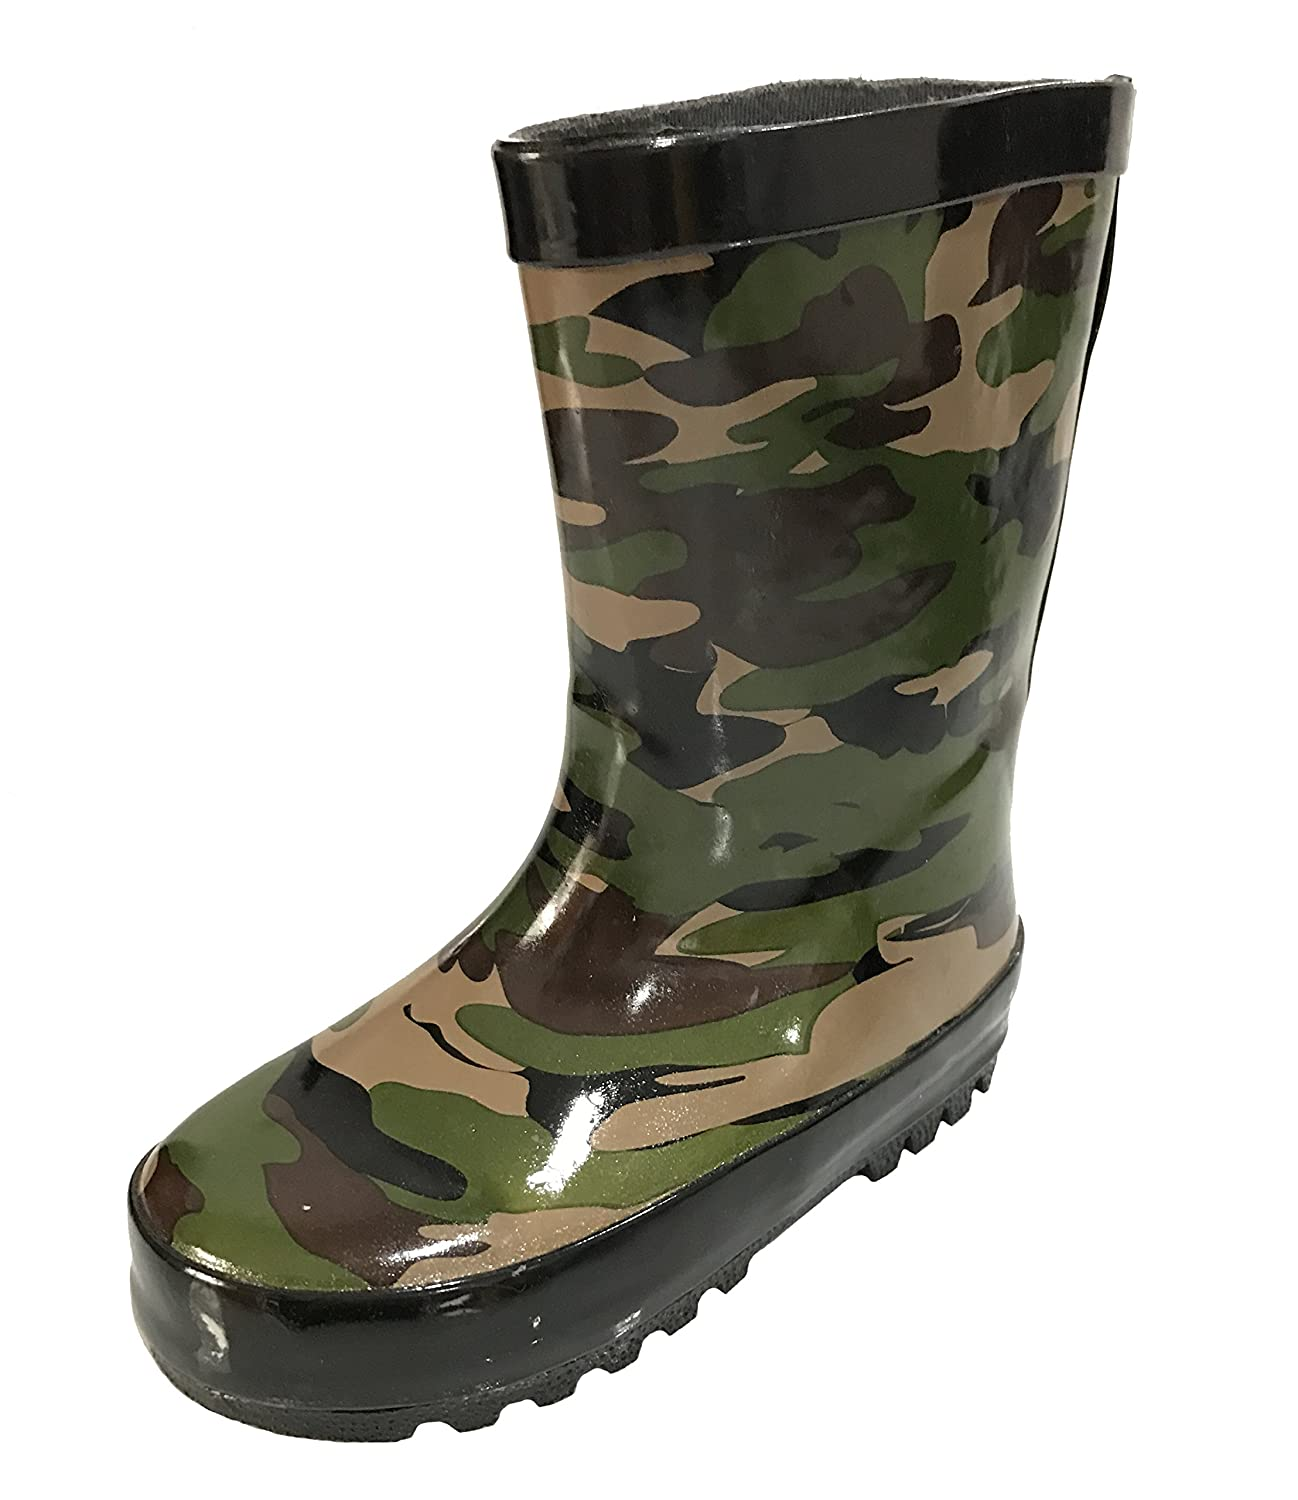 INT Toddler and Youth Boys and Girls Unisex Camouflage Camo Rain Boot Snow Boot Green Black w/Mesh Lining